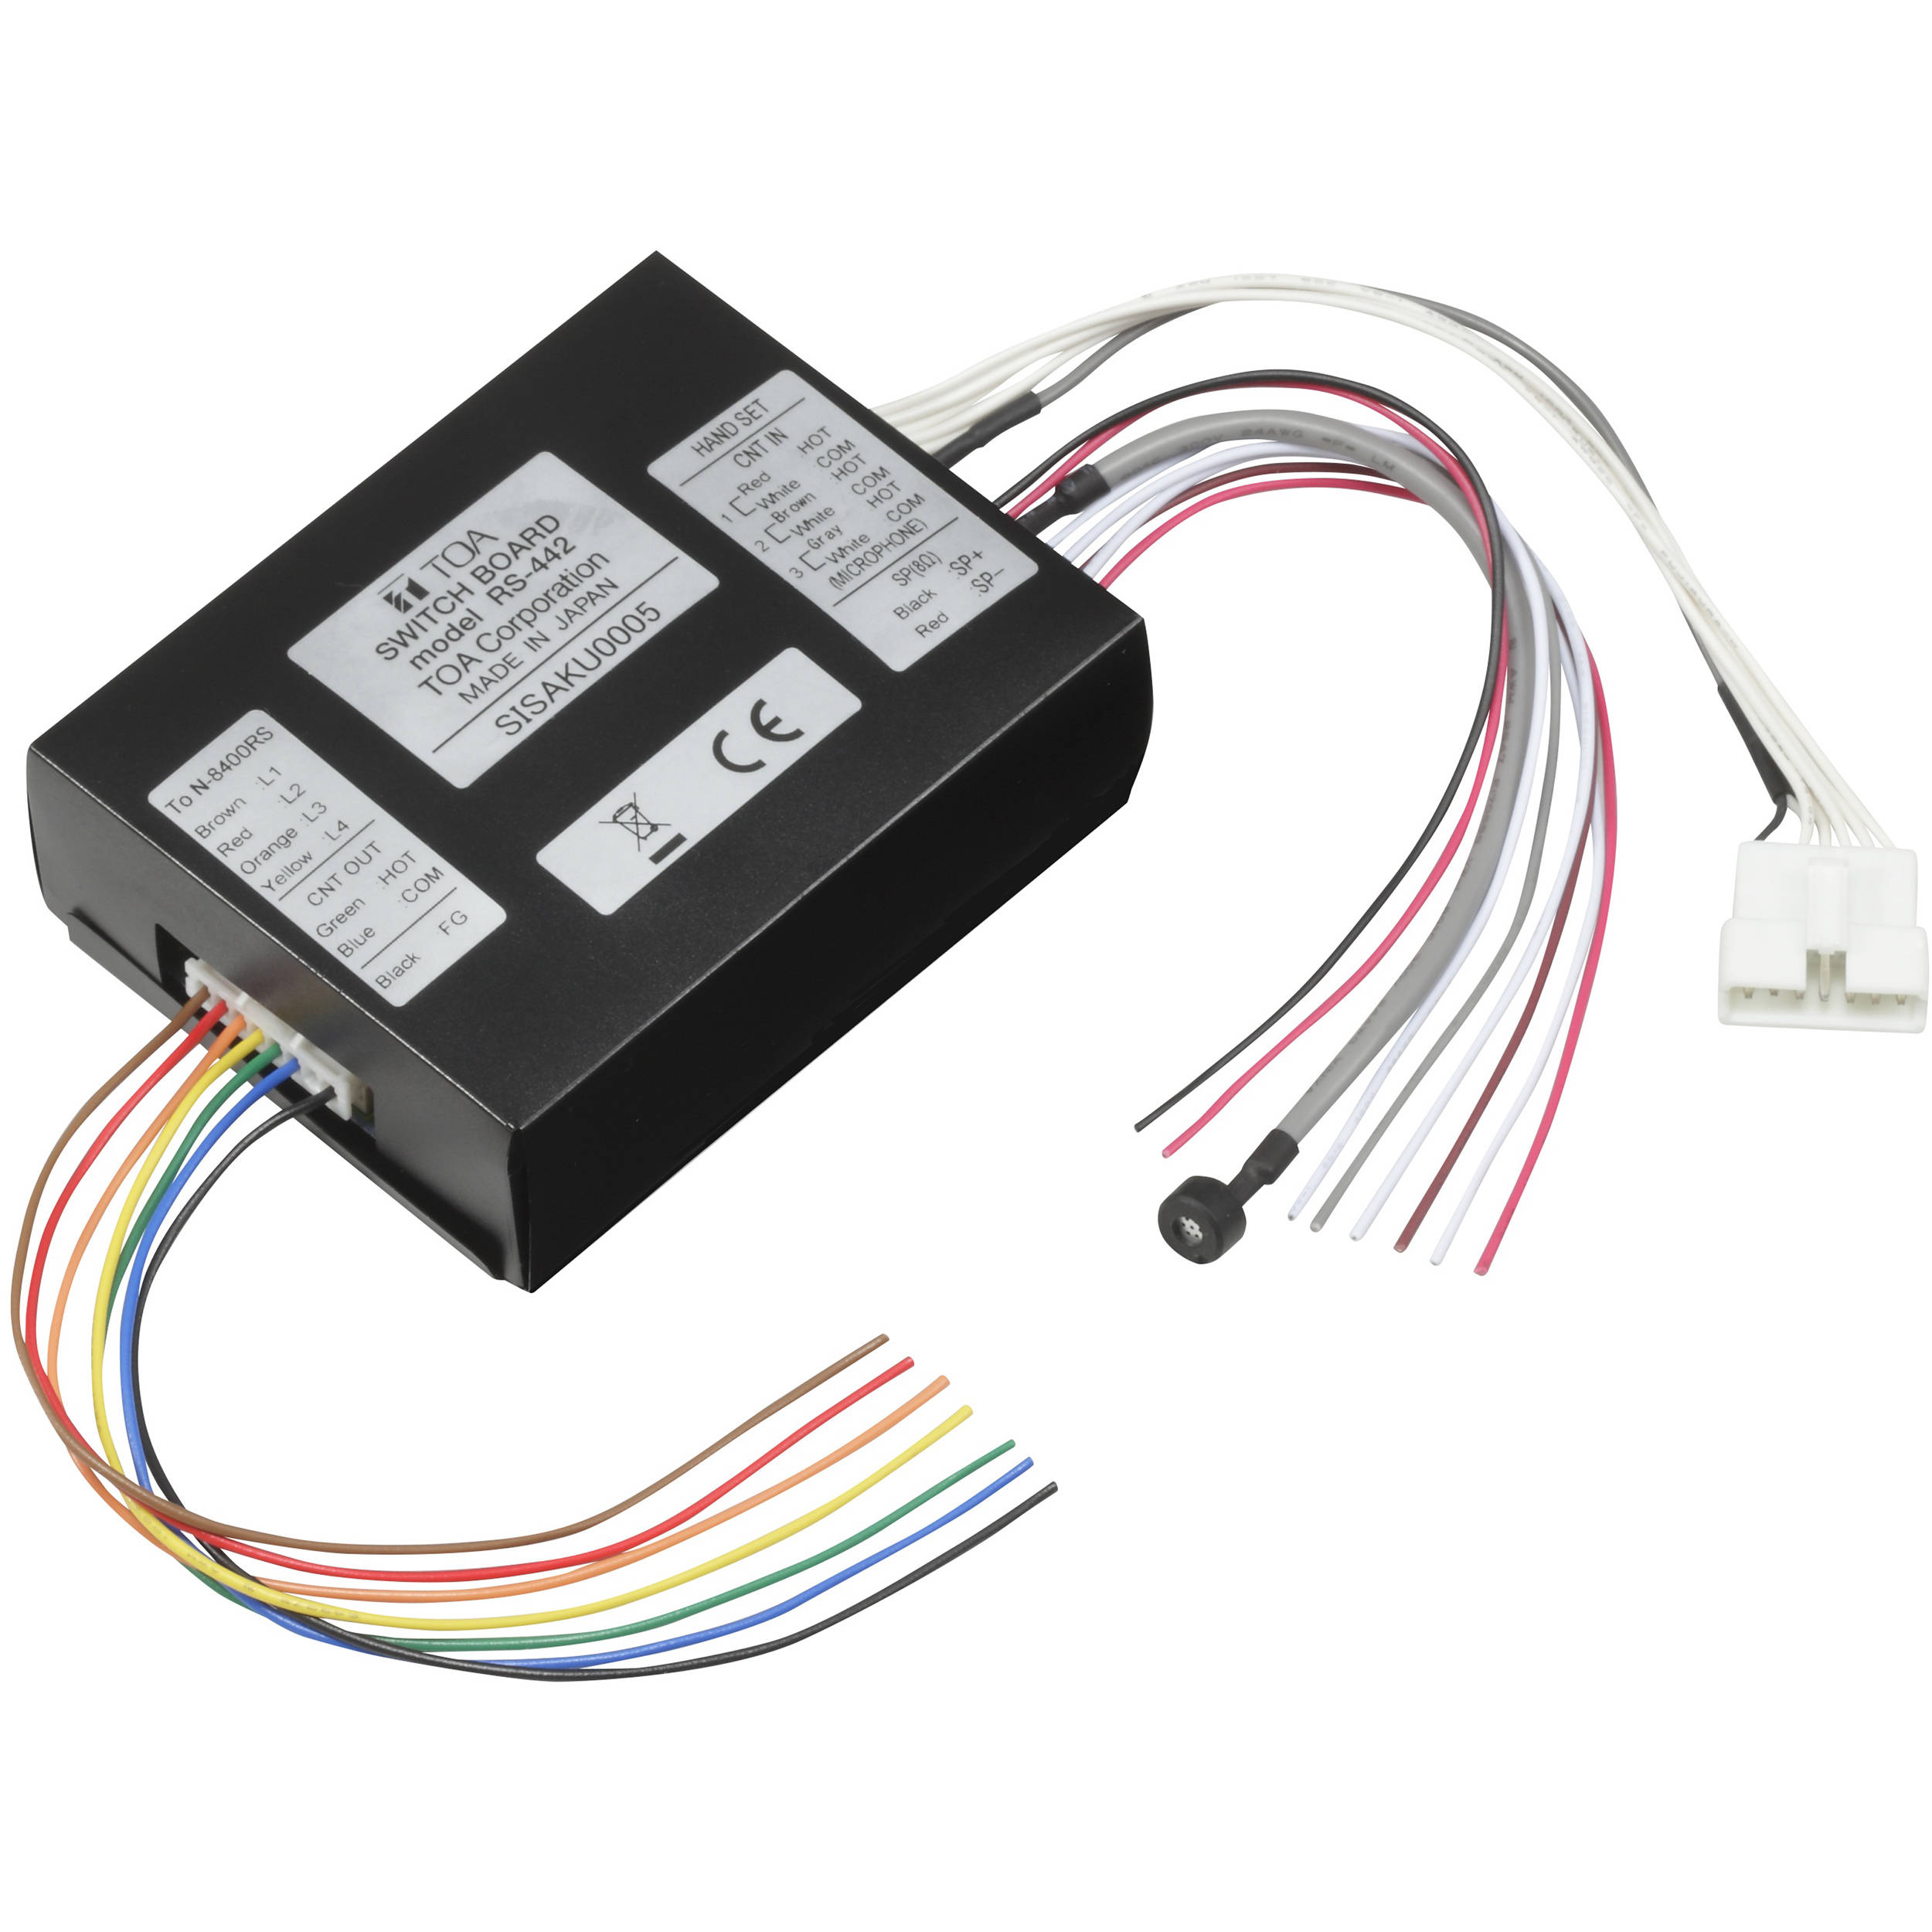 Toa Electronics RS-442 IP 4-Wire Intercom Switch Board for N-8400RS on